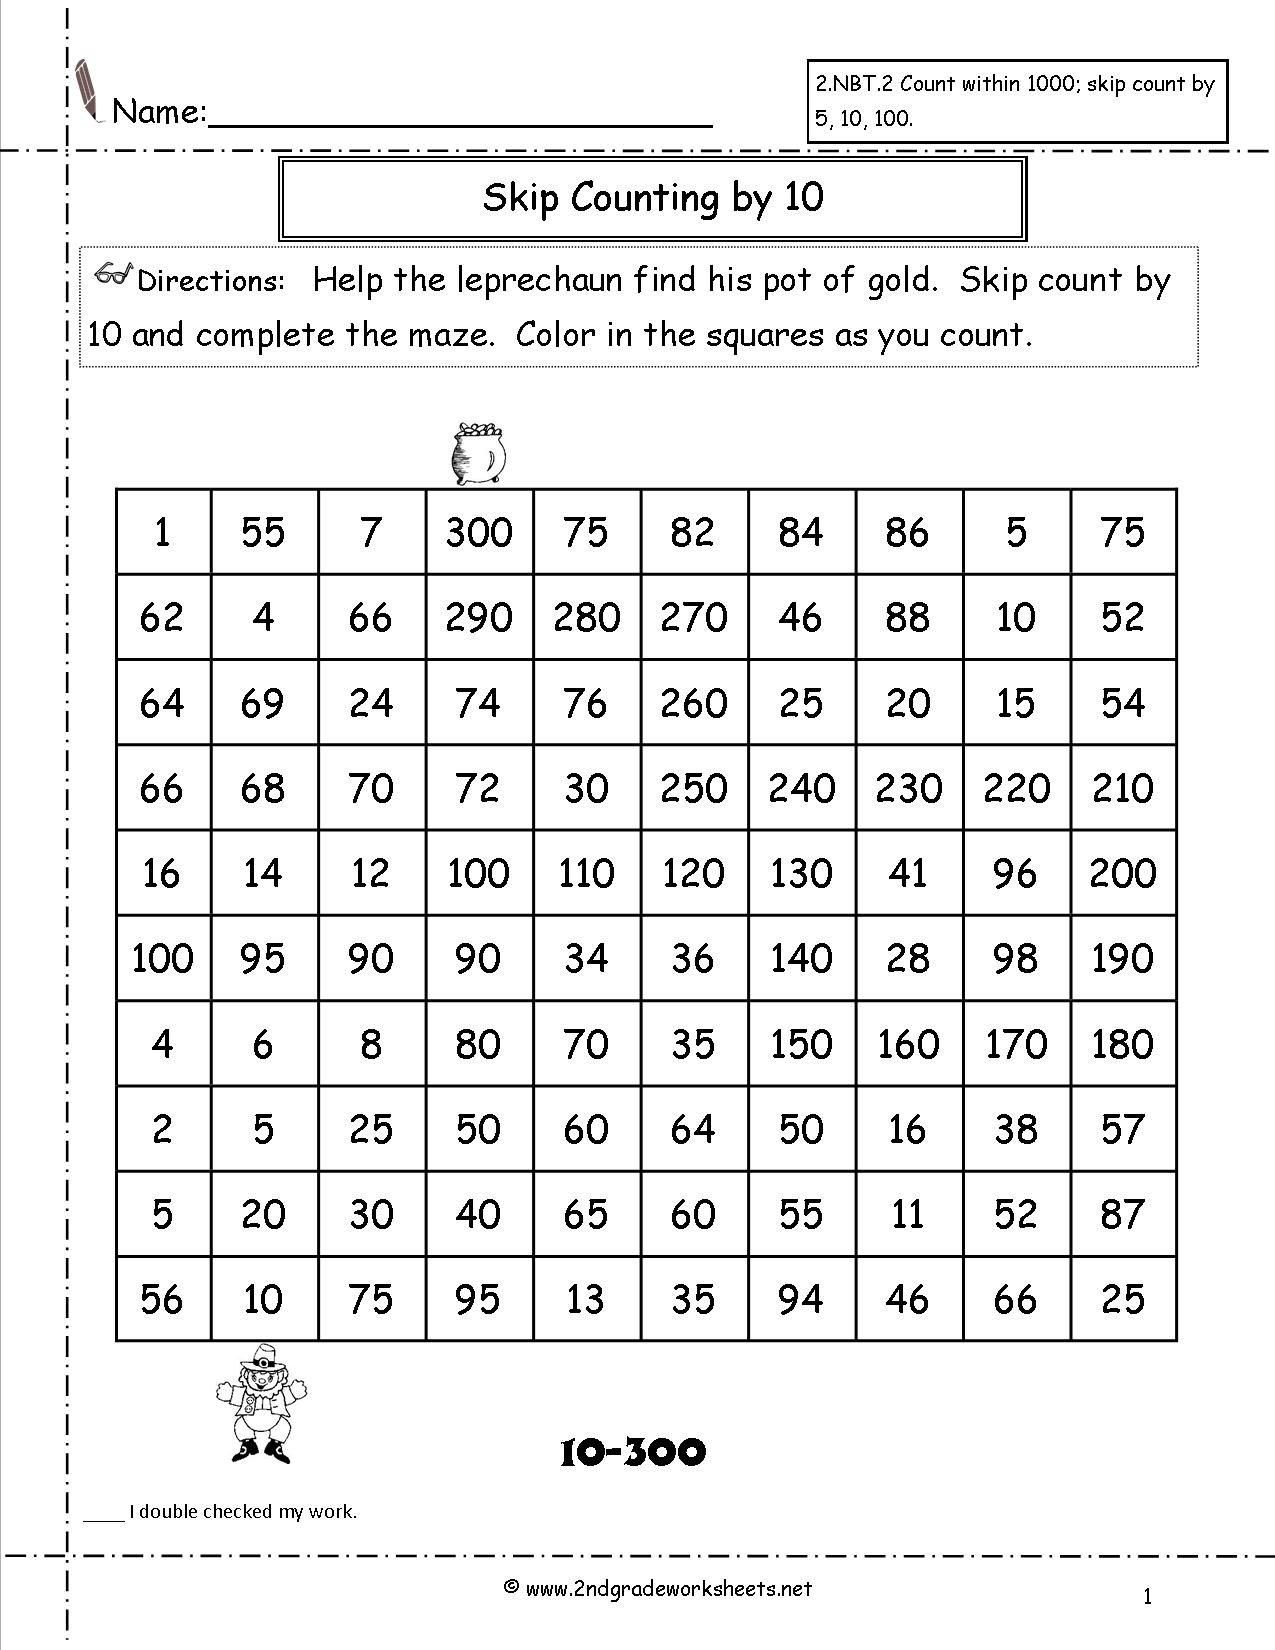 Skip Counting By 10 Maze Worksheet